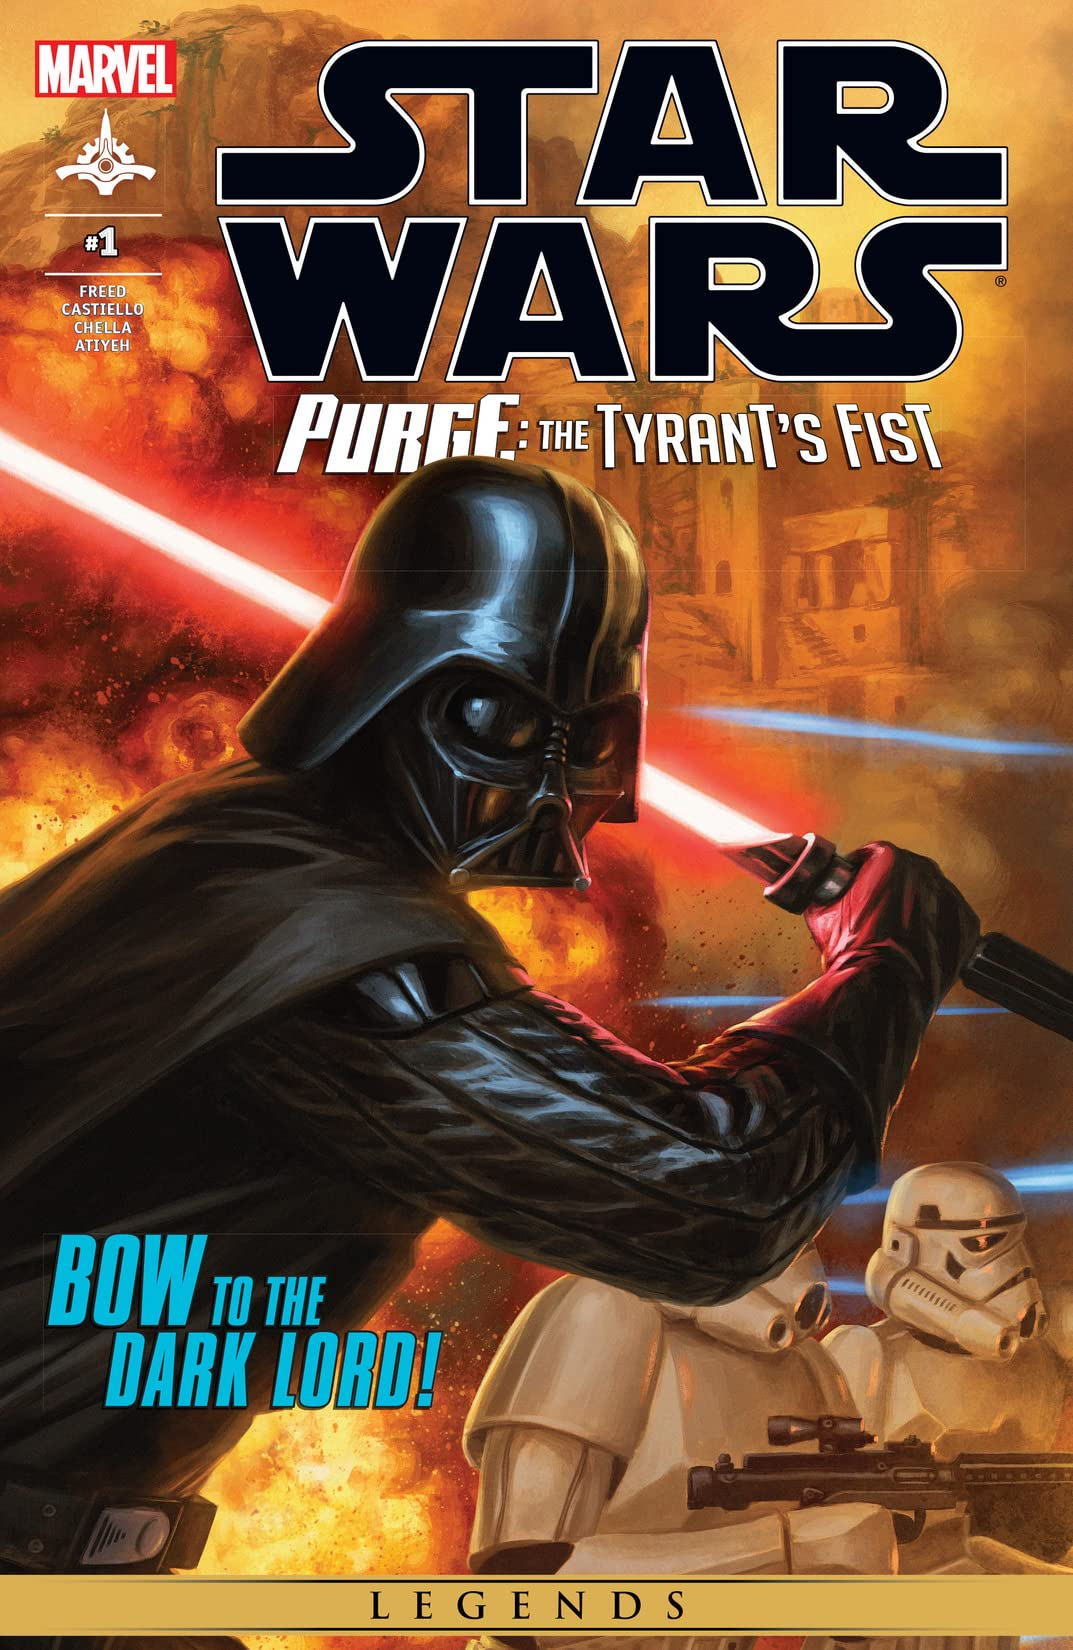 Star Wars: Purge - The Tyrant's Fist (2012-2013) #1 (of 2)